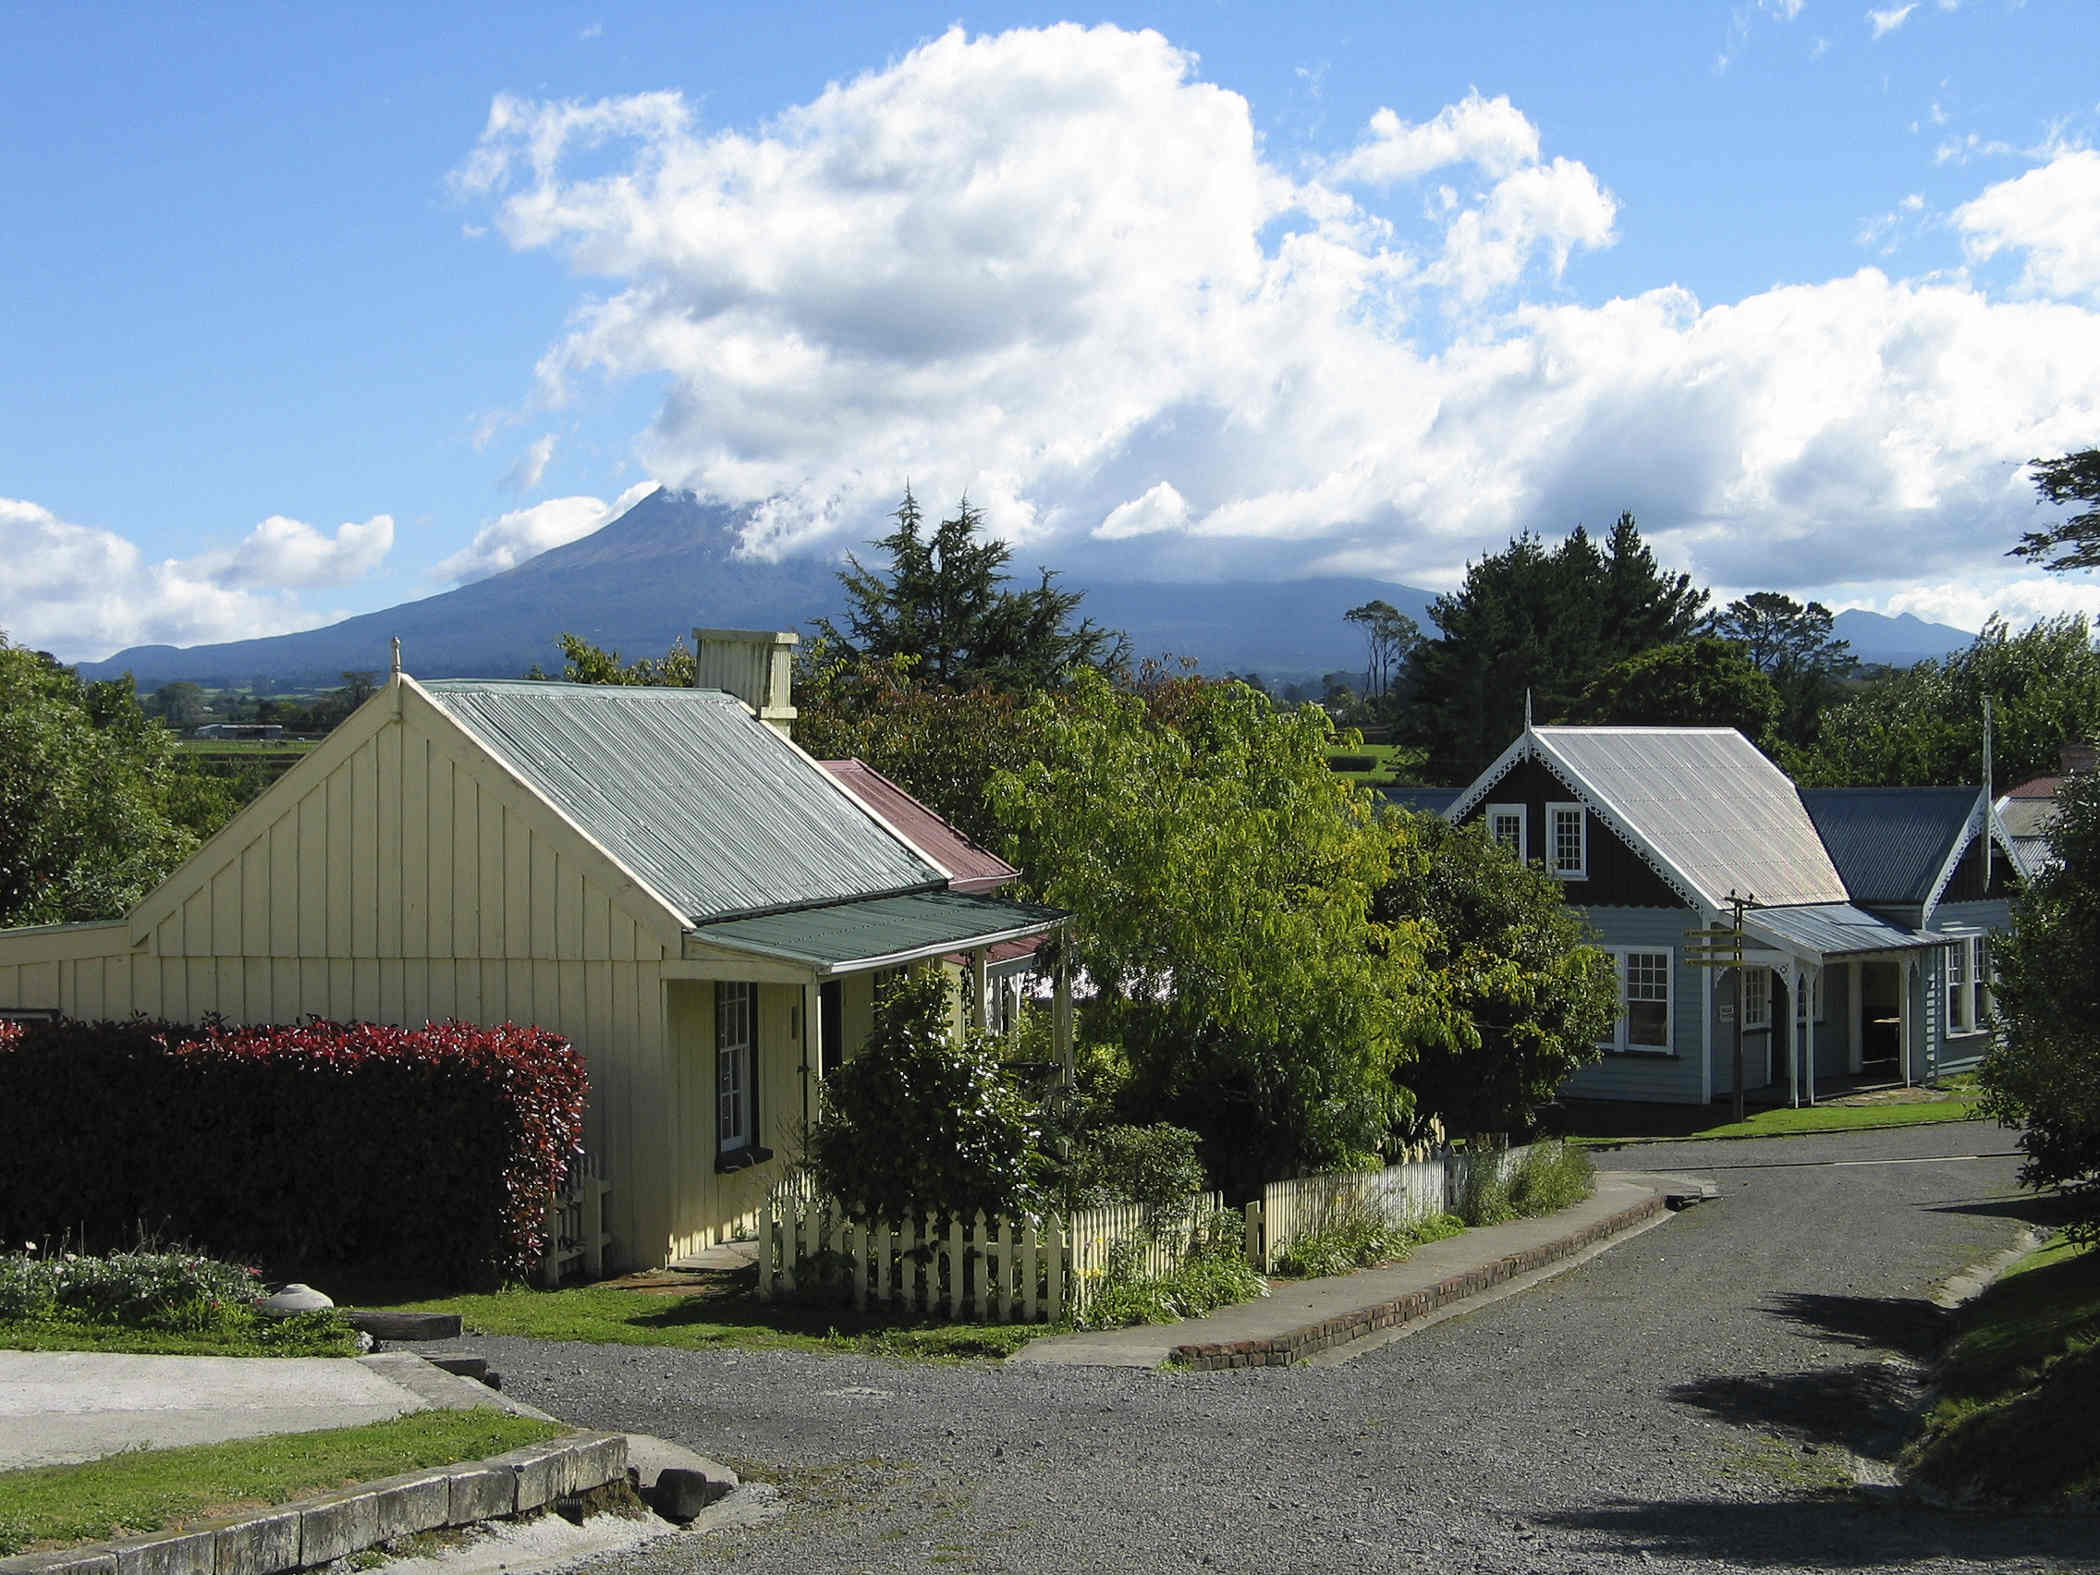 buy real estate for sale new zealand - real estate agents nz